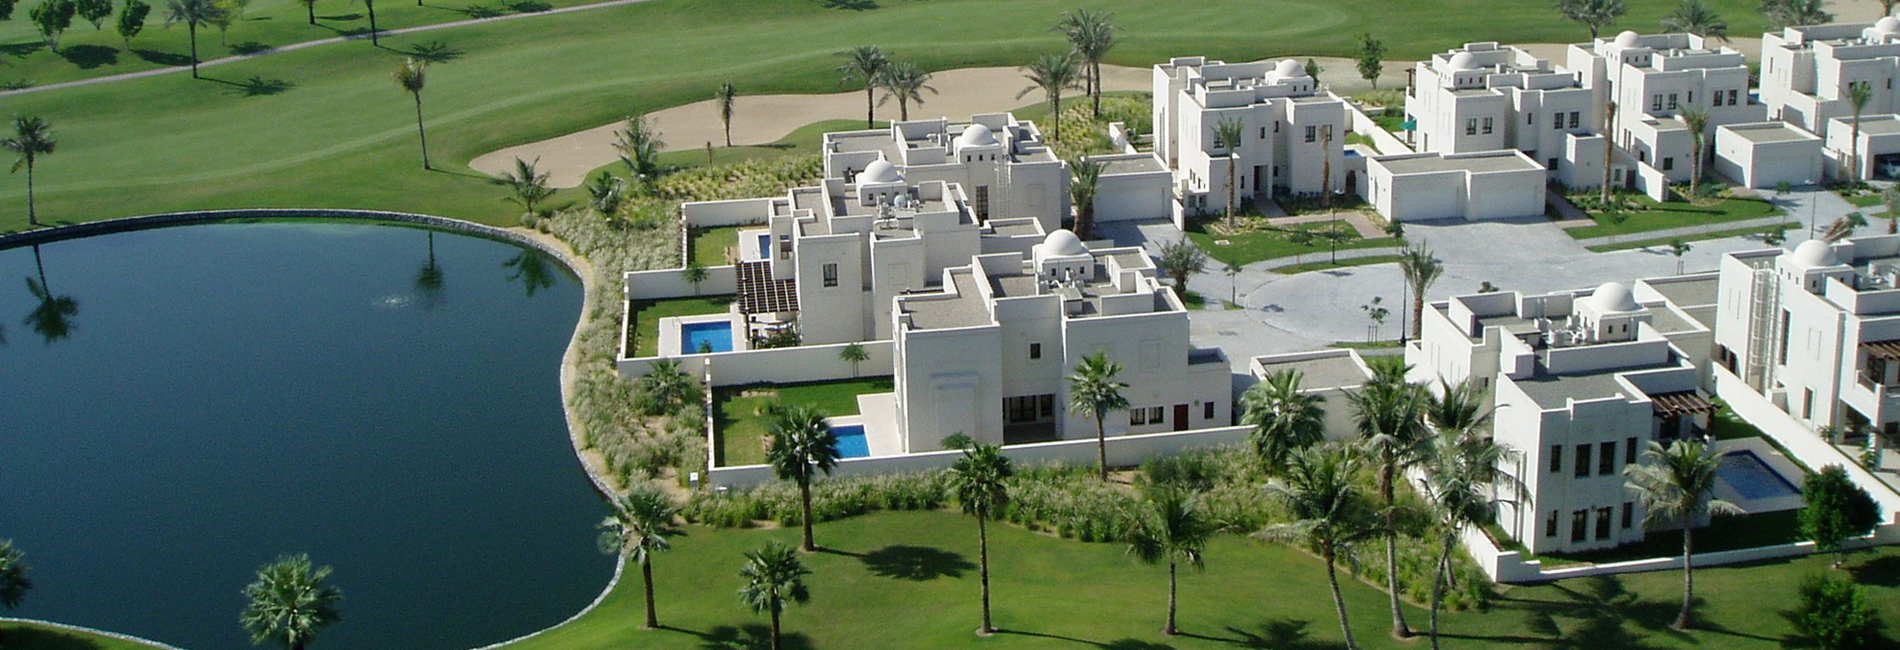 <strong>Trust a New Company with 40 Years of History </strong><br/><br/><span>Villas at Dubai Creek Golf & Yacht Club – Dubai</span>